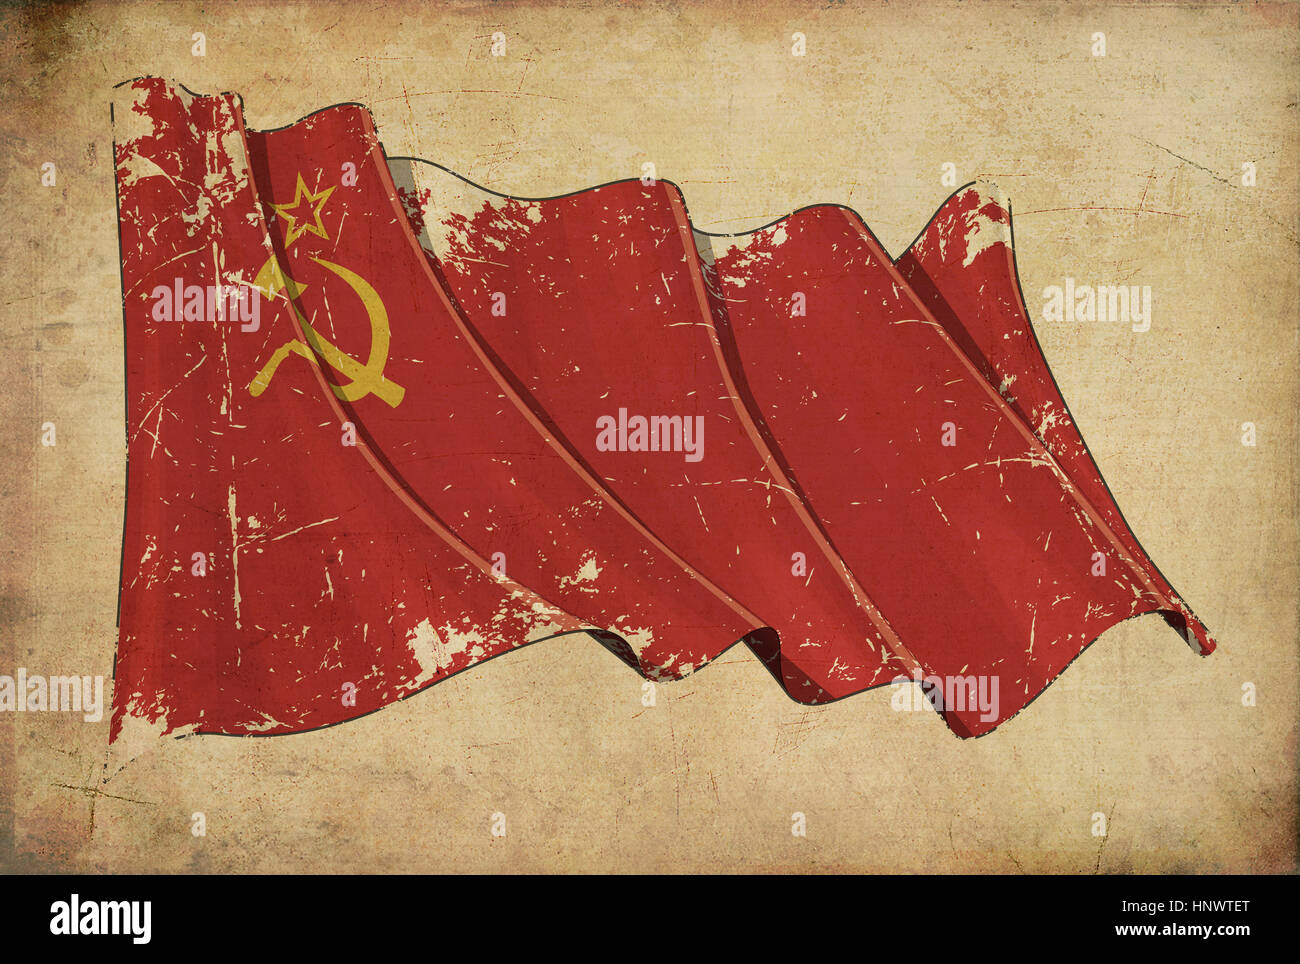 Wallpaper depicting an aged paper, textured background with a scratched illustration of the Soviet Union flag - Stock Image